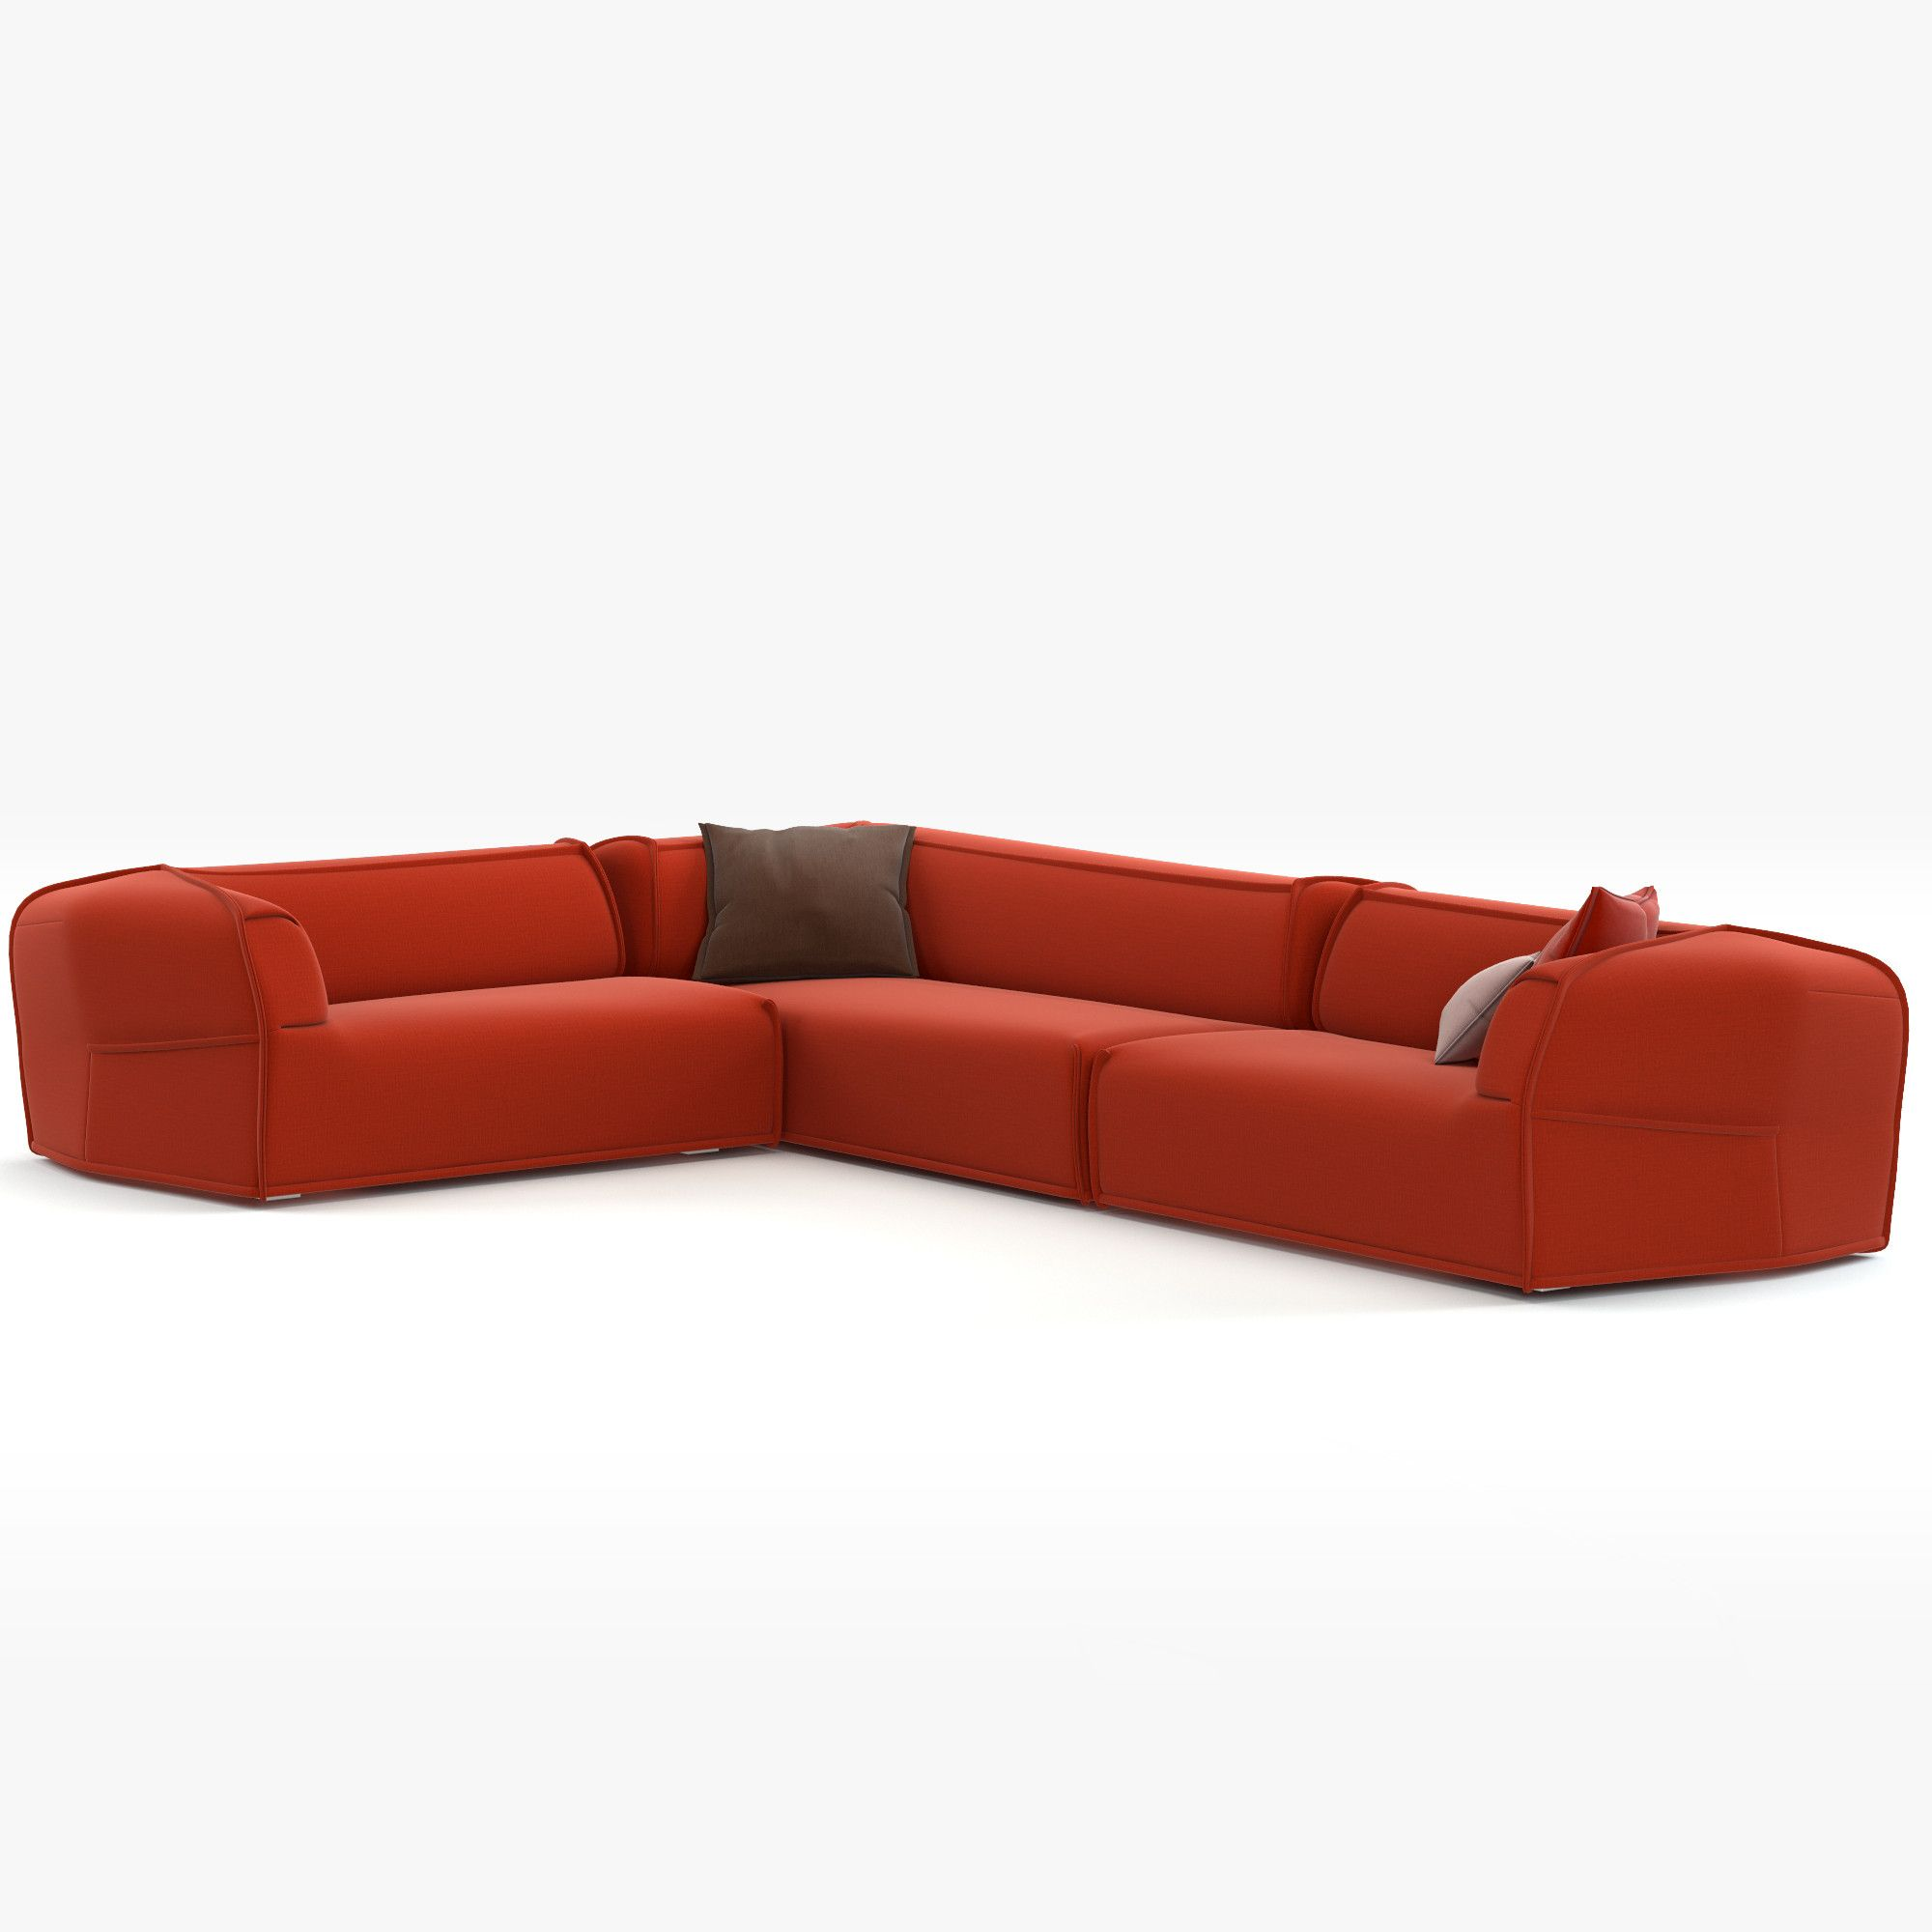 Moroso Couchtisch Moroso Sofa Lowland Seater Sofa Major With Moroso Sofa Cool